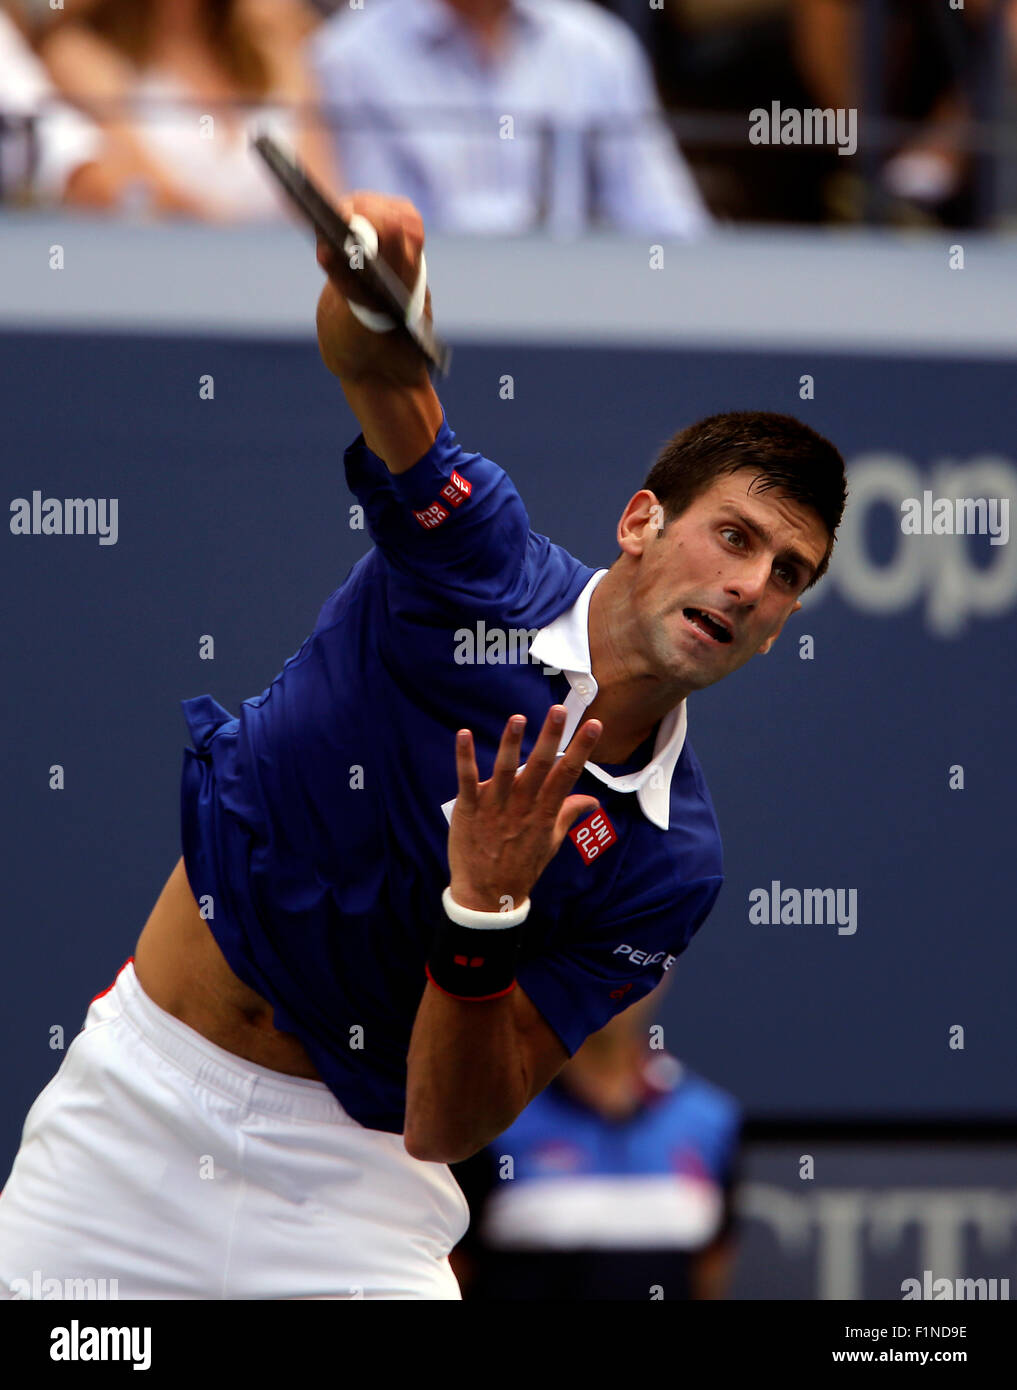 New York, USA. 4th September, 2015. Novak Djokovic serving during his third round match against Andreas Seppi of - Stock Image